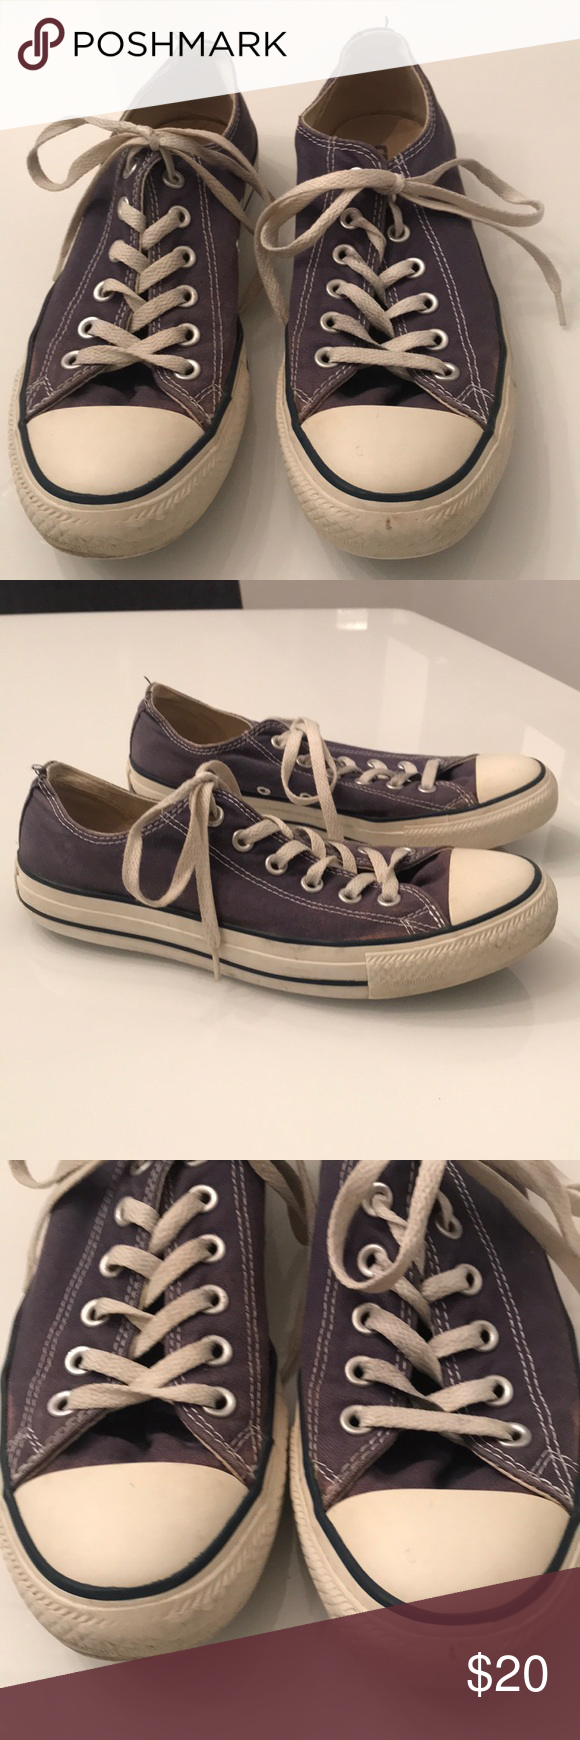 f71c08fc528d Converse Chuck Taylor sneakers! Classic Chuck Taylors in dark blue. All  wear is shown. Soles are in good shape. Converse Shoes Sneakers